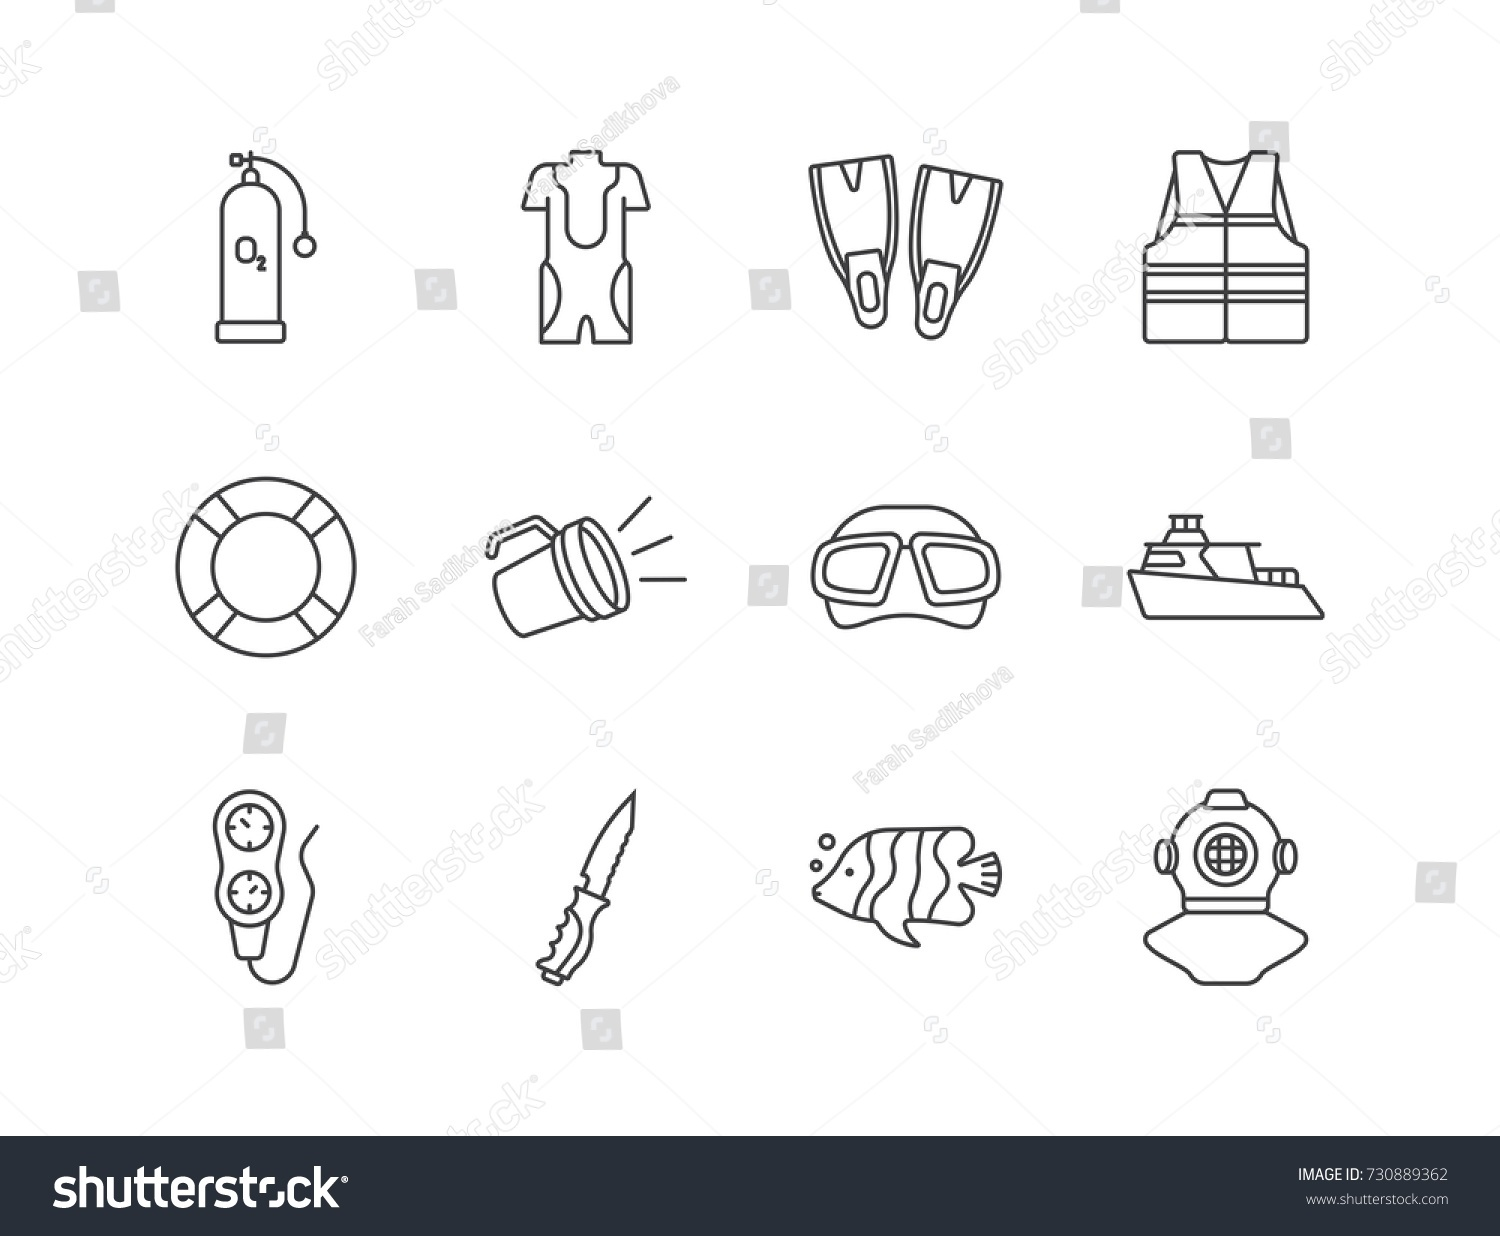 scuba gear diagram g35 window motor wiring diving equipment line icons stock vector royalty free set with air tank diver suit flippers